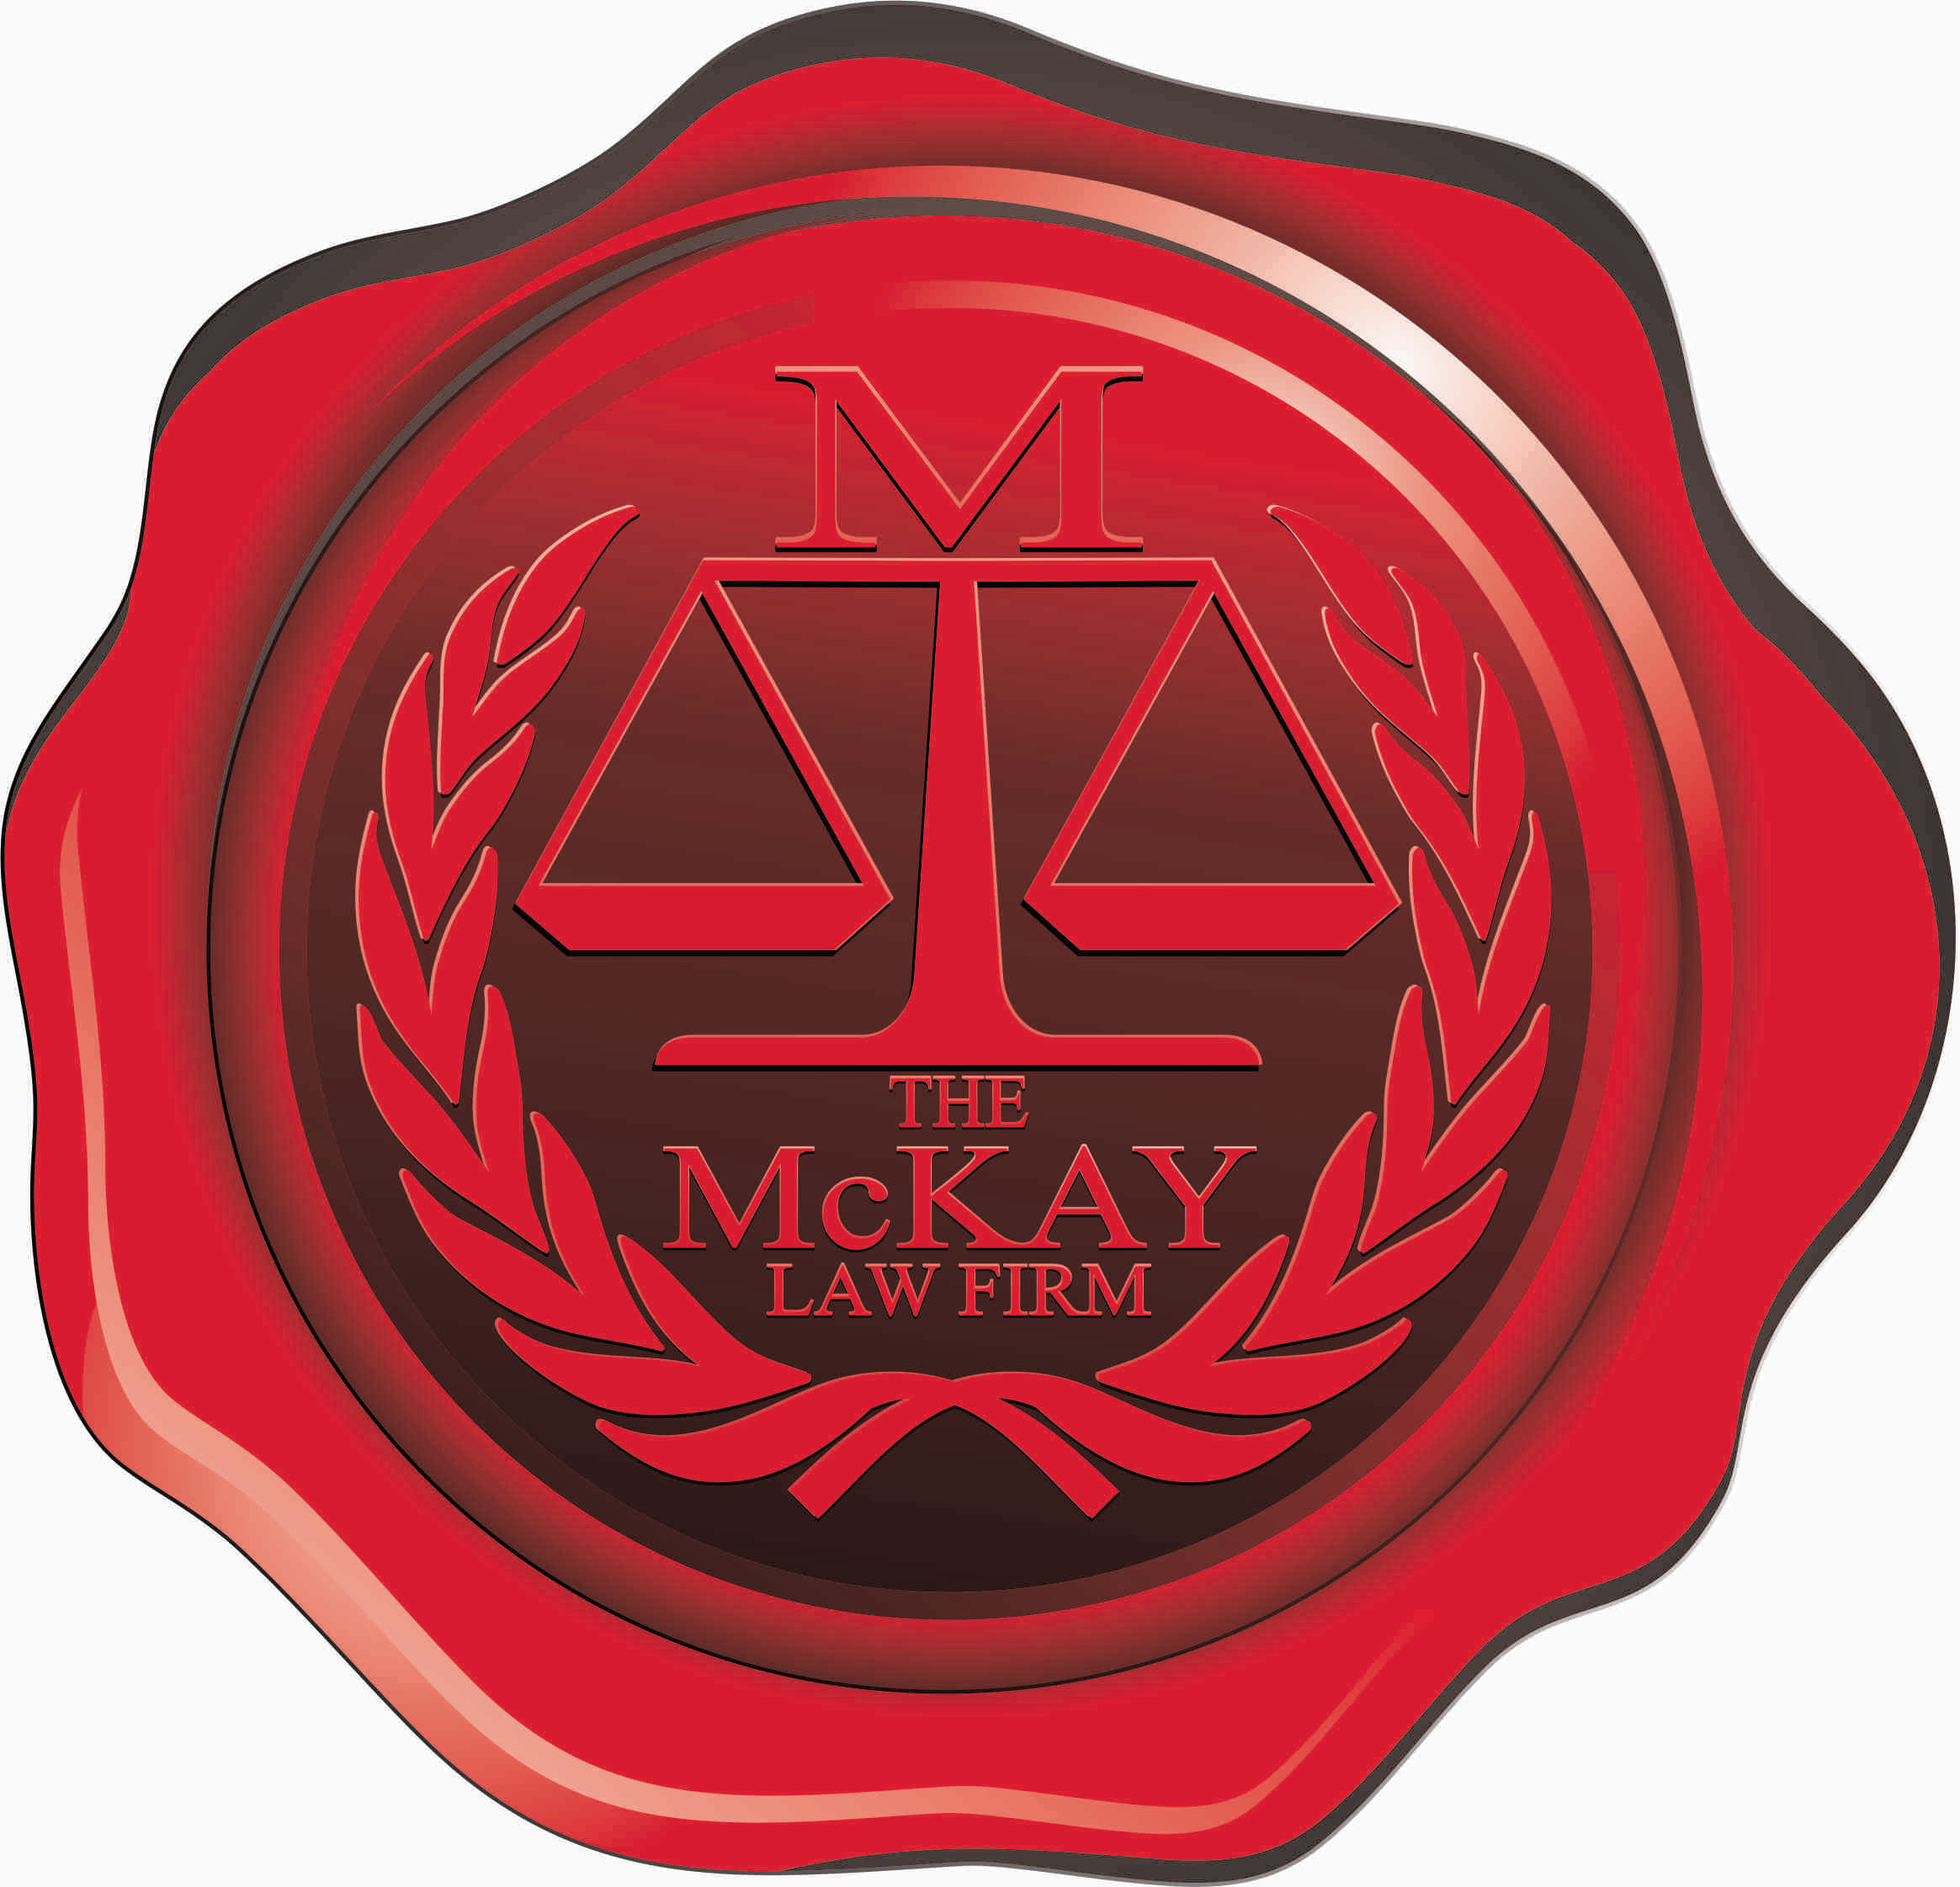 The McKay Law Firm LLC